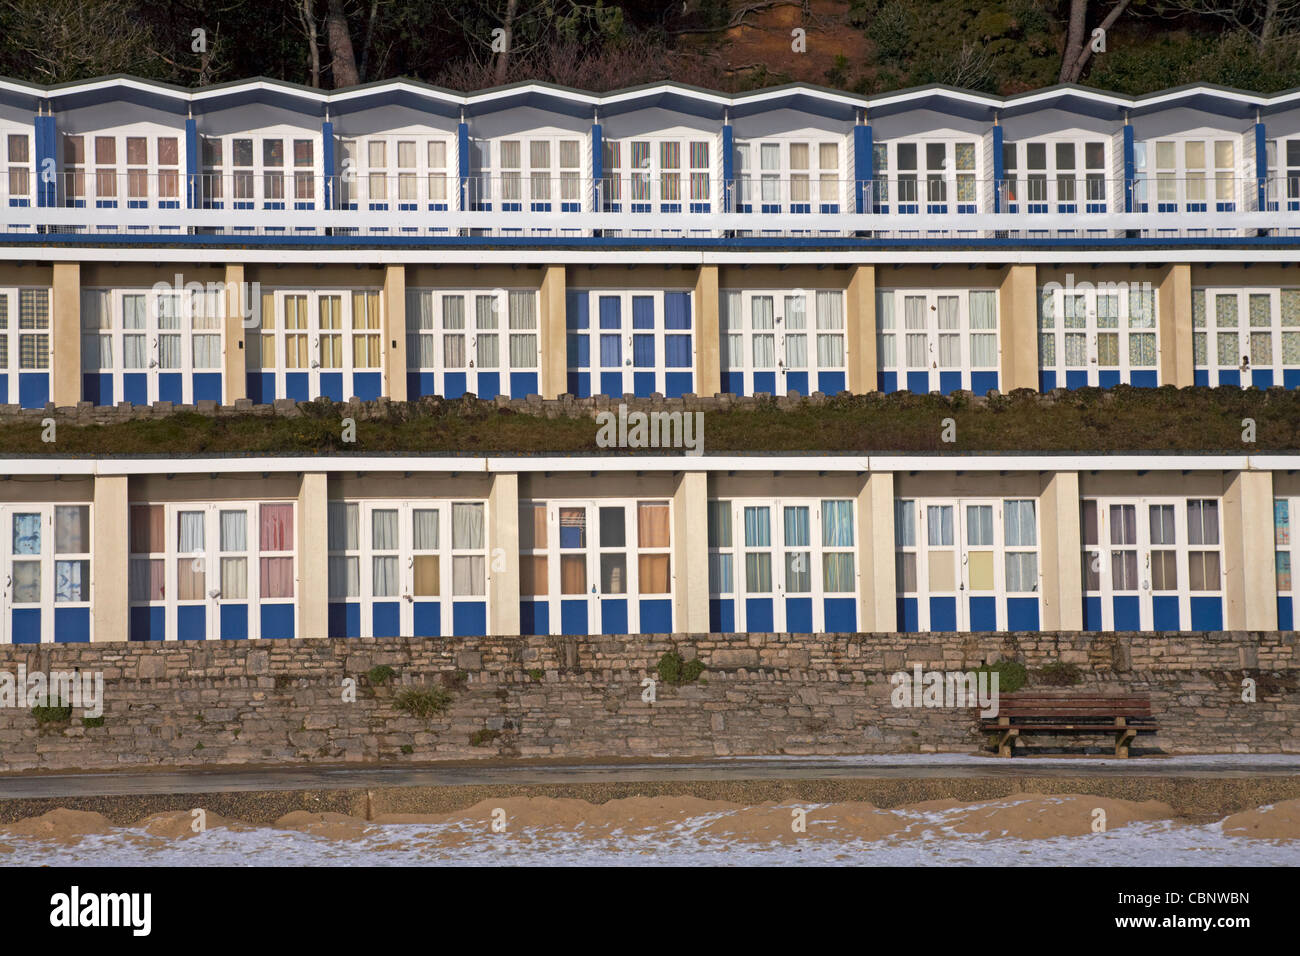 Beach huts at Branksome Dene Chine, Poole with snow on the beach in December Stock Photo